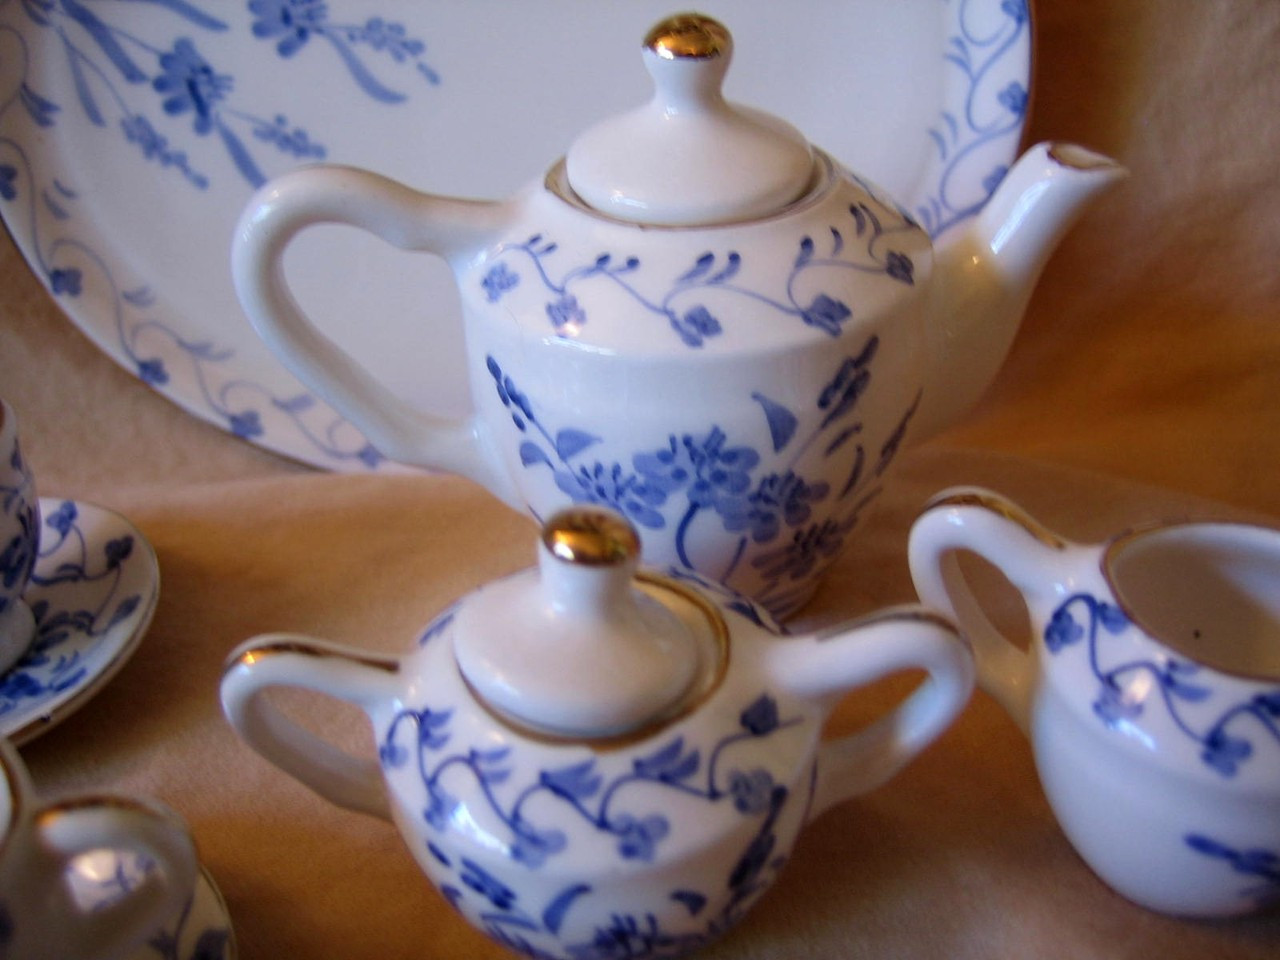 Doll Tea Set - Elegant Miniature Blue White Gold Leaf Teapot Cups Sugar Creamer Tray Edge www.DecorativeDishes.net